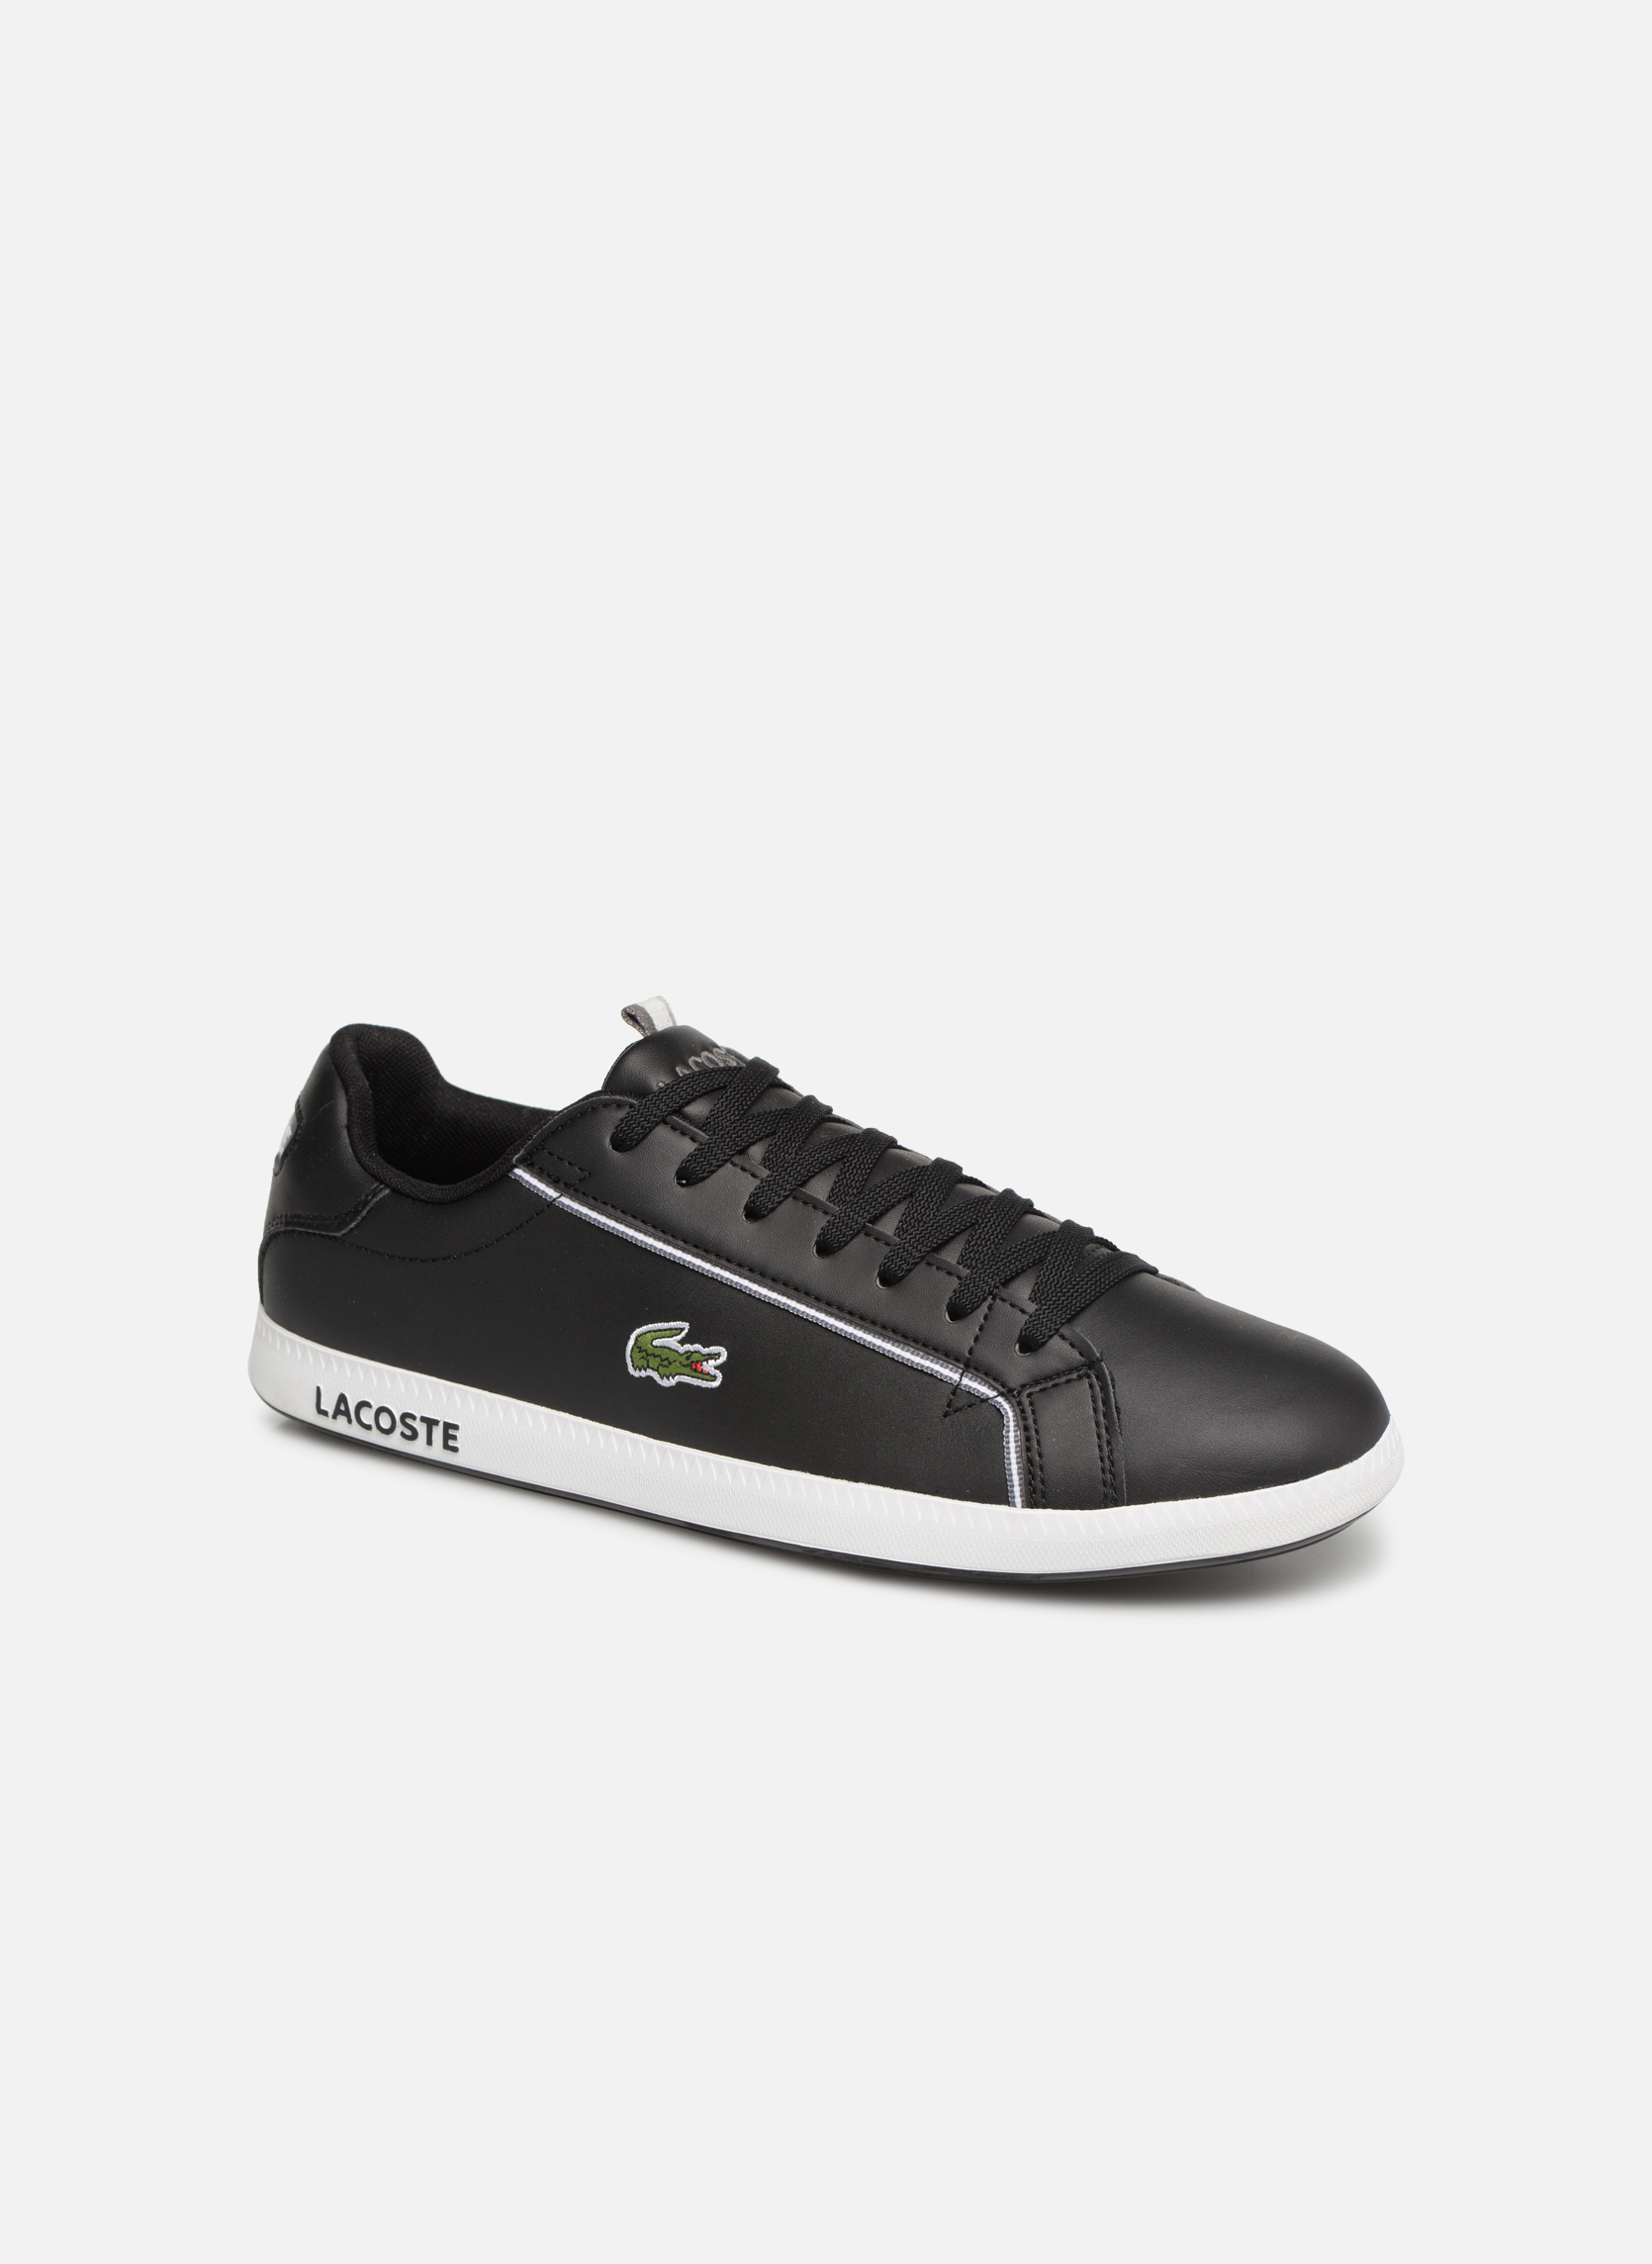 Sneakers Graduate 119 1 Sma by Lacoste